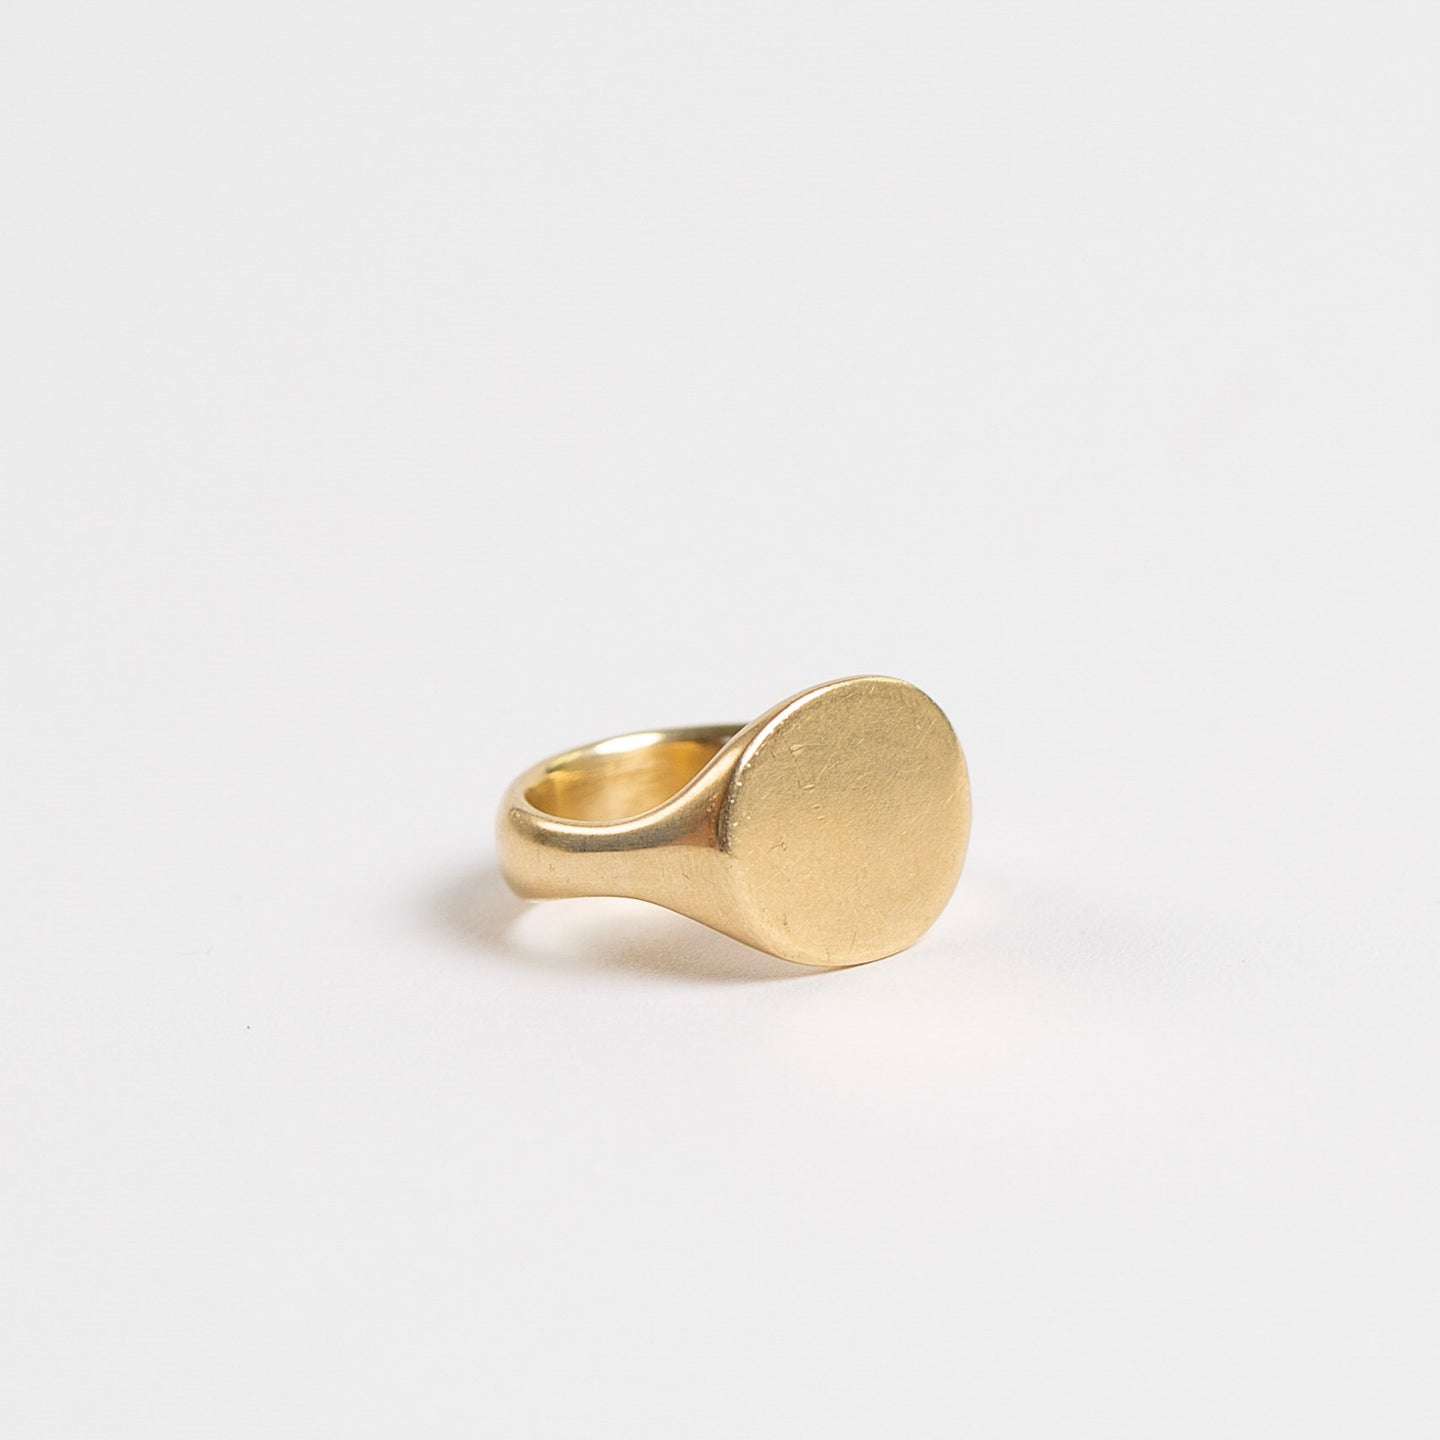 Lola Brooks<br>Ovalish Signet Ring